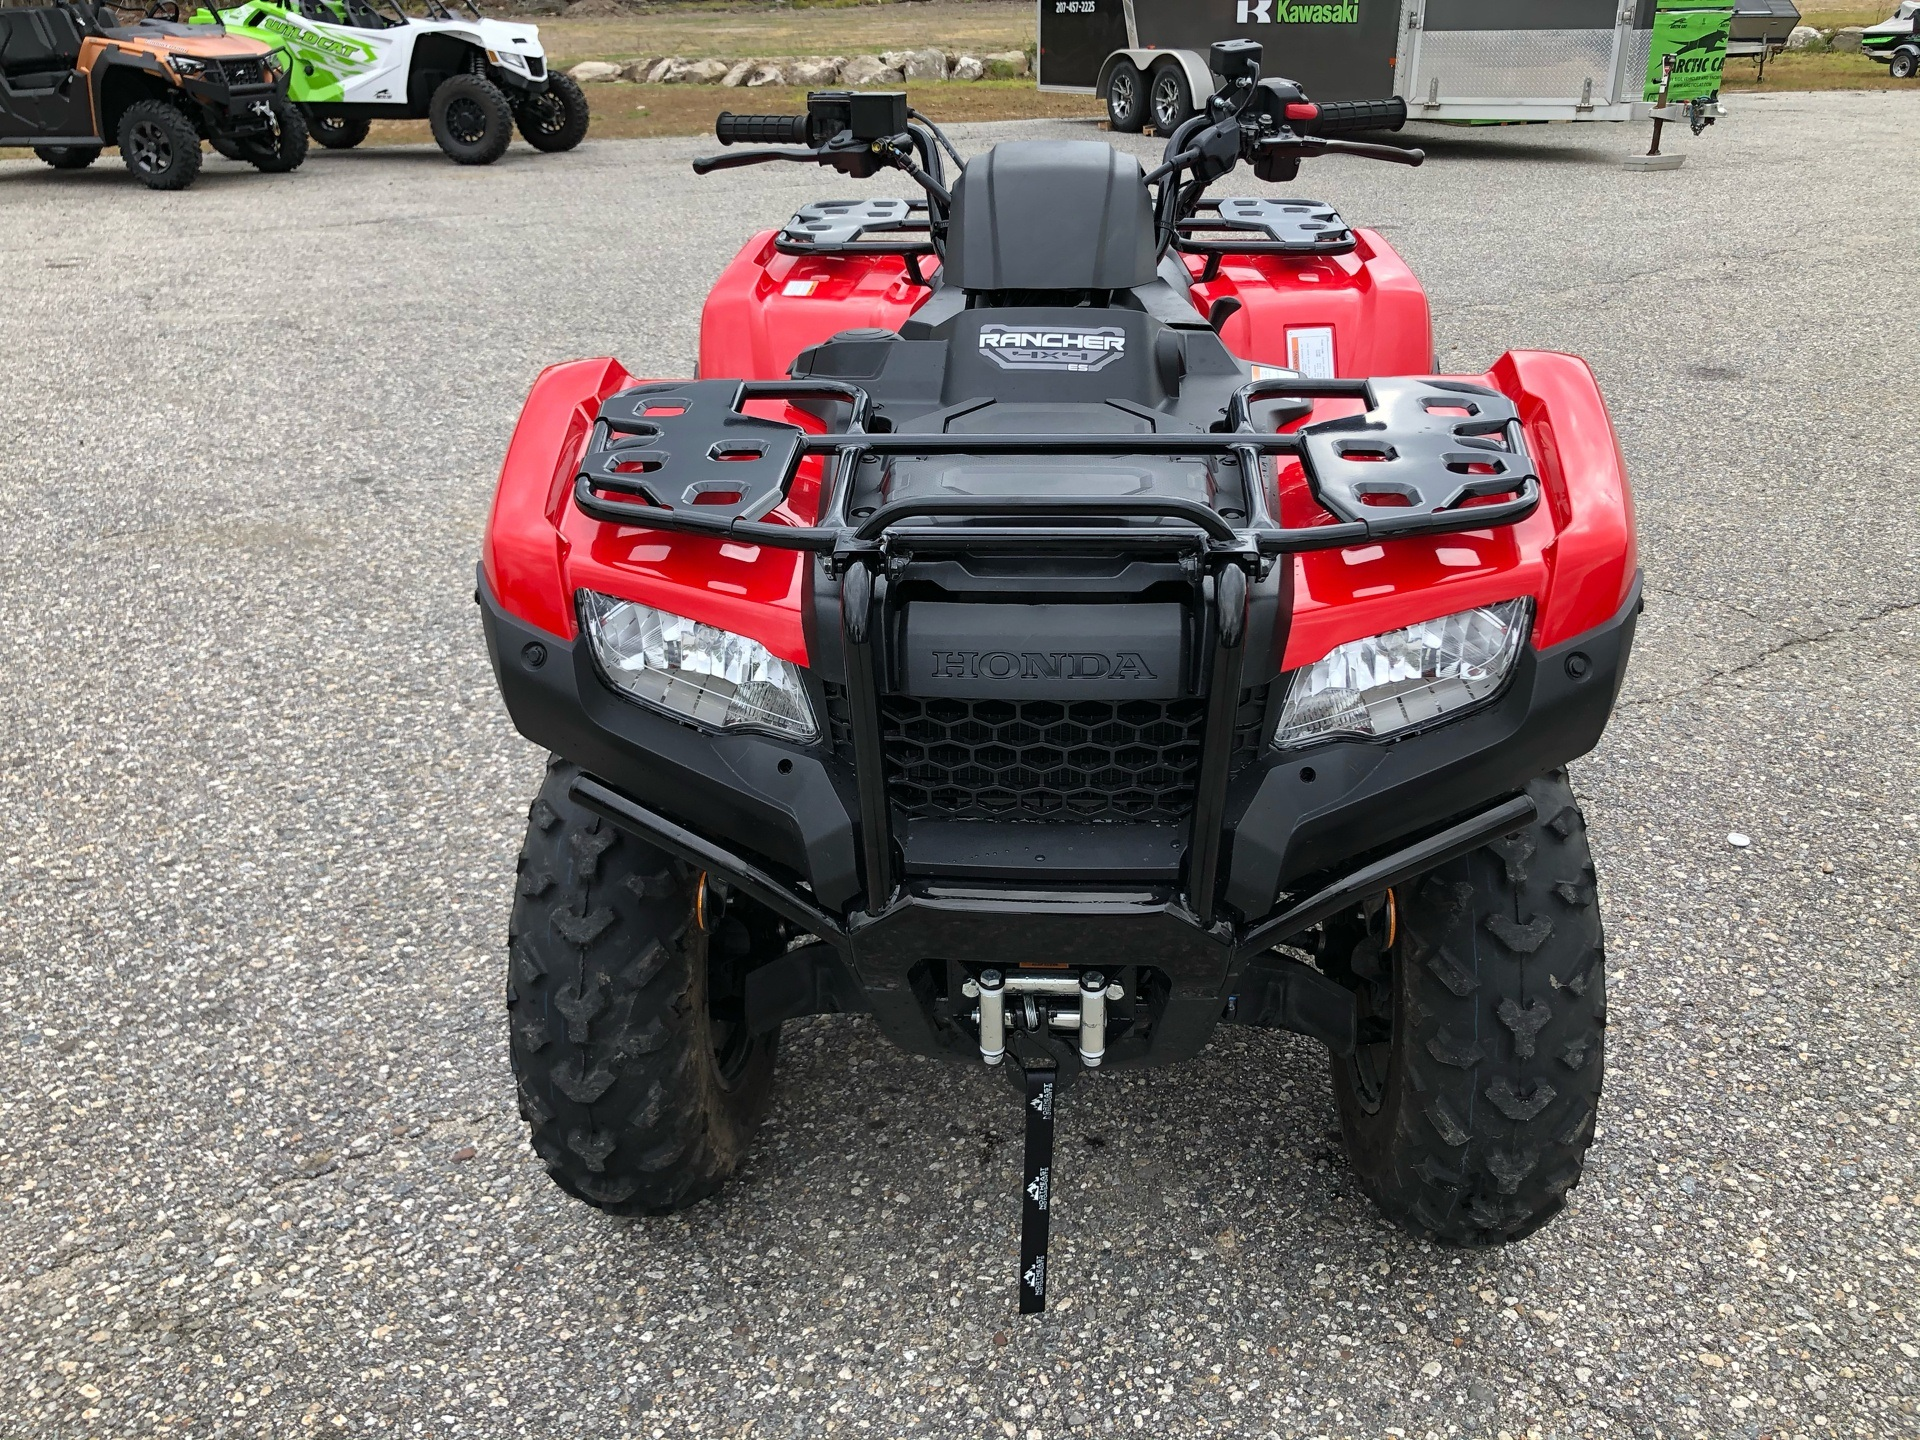 2020 Honda FourTrax Rancher 4x4 ES in Lebanon, Maine - Photo 8